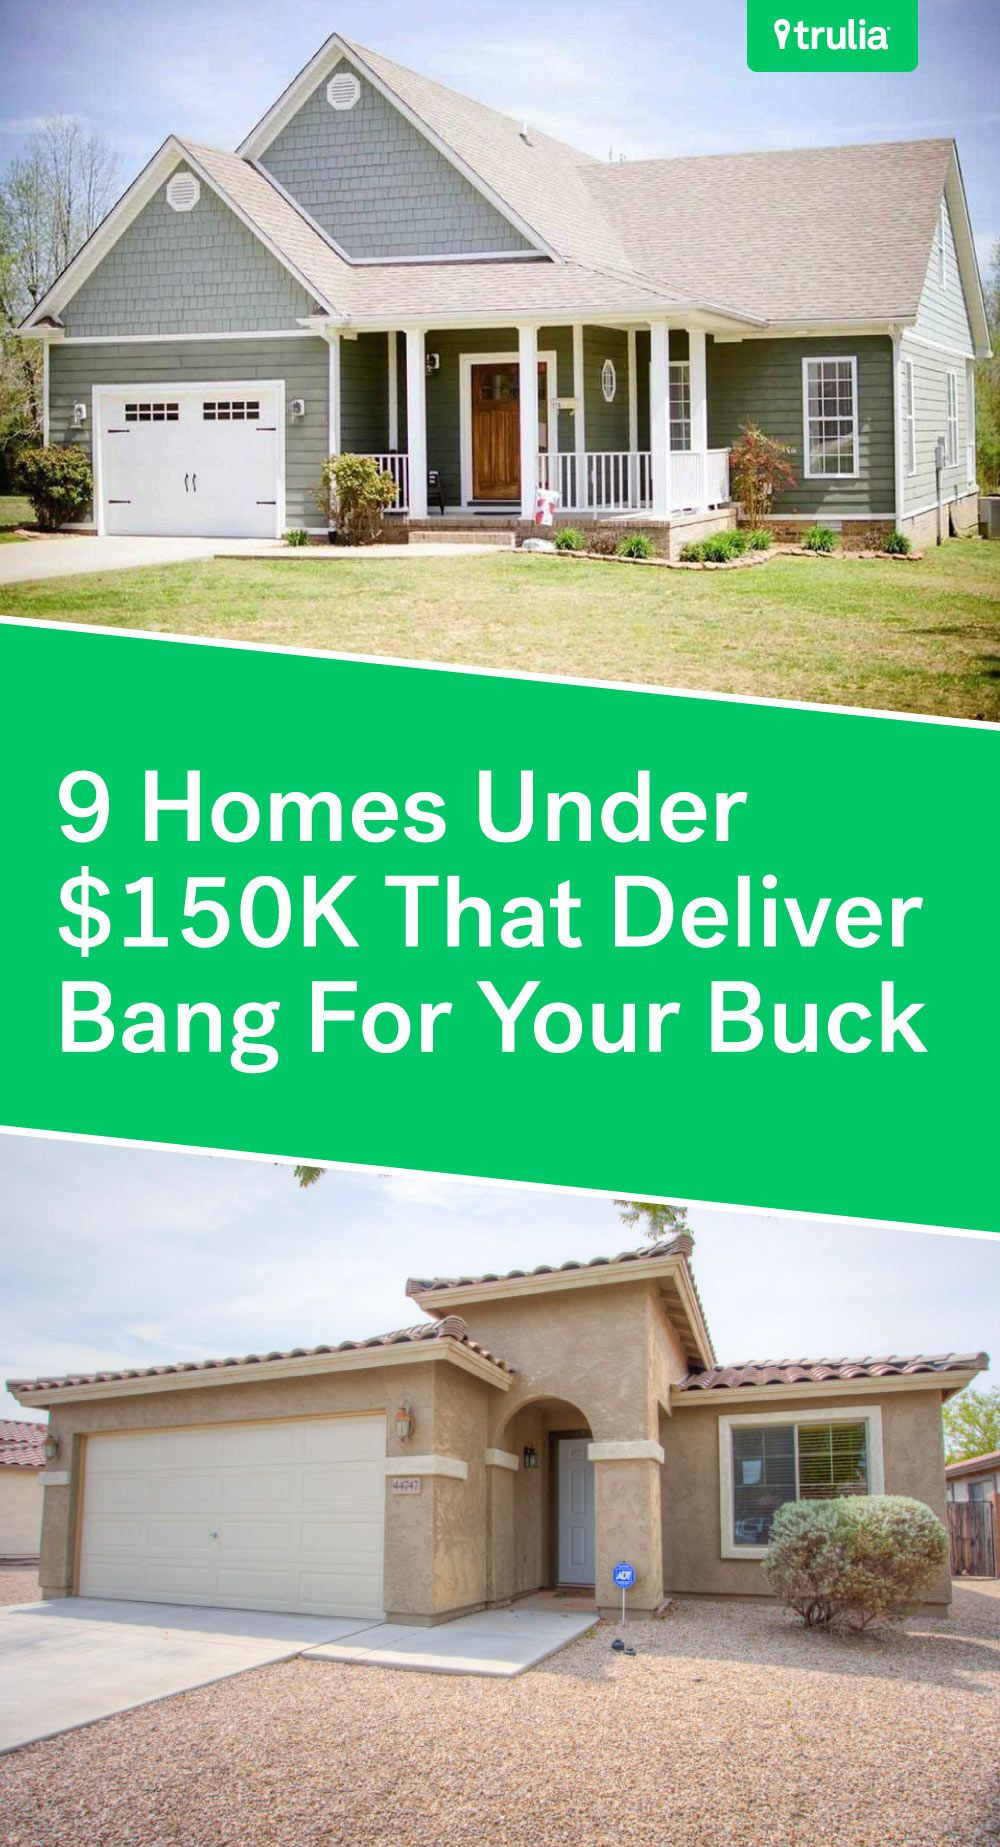 Houses that Can Be Built for Under 150k Fresh 9 Affordable Houses Priced Under $150k — Real Estate 101